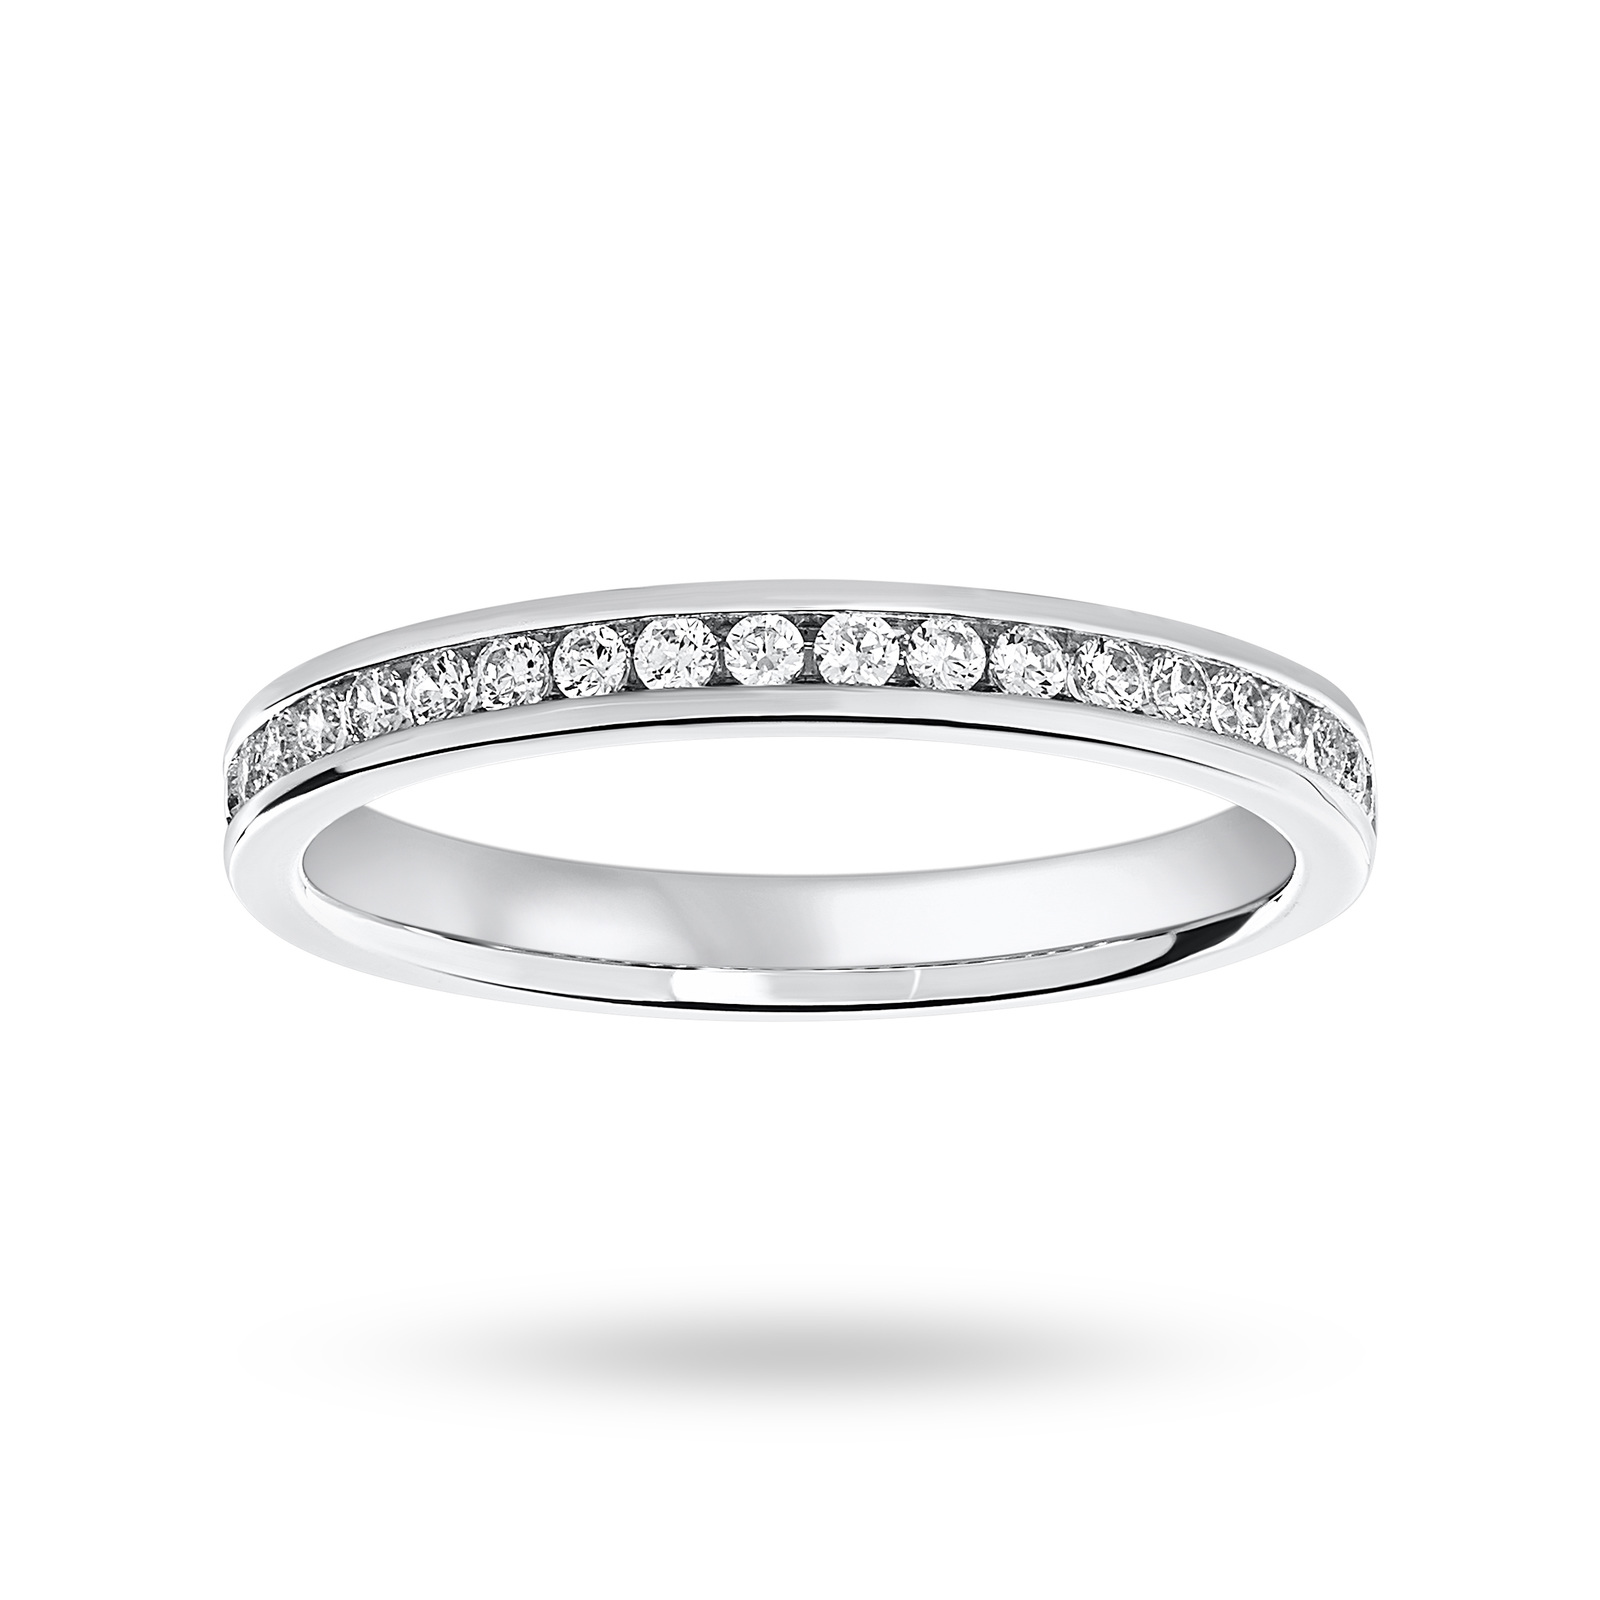 Platinum 0.25cttw Diamond Half Eternity Ring